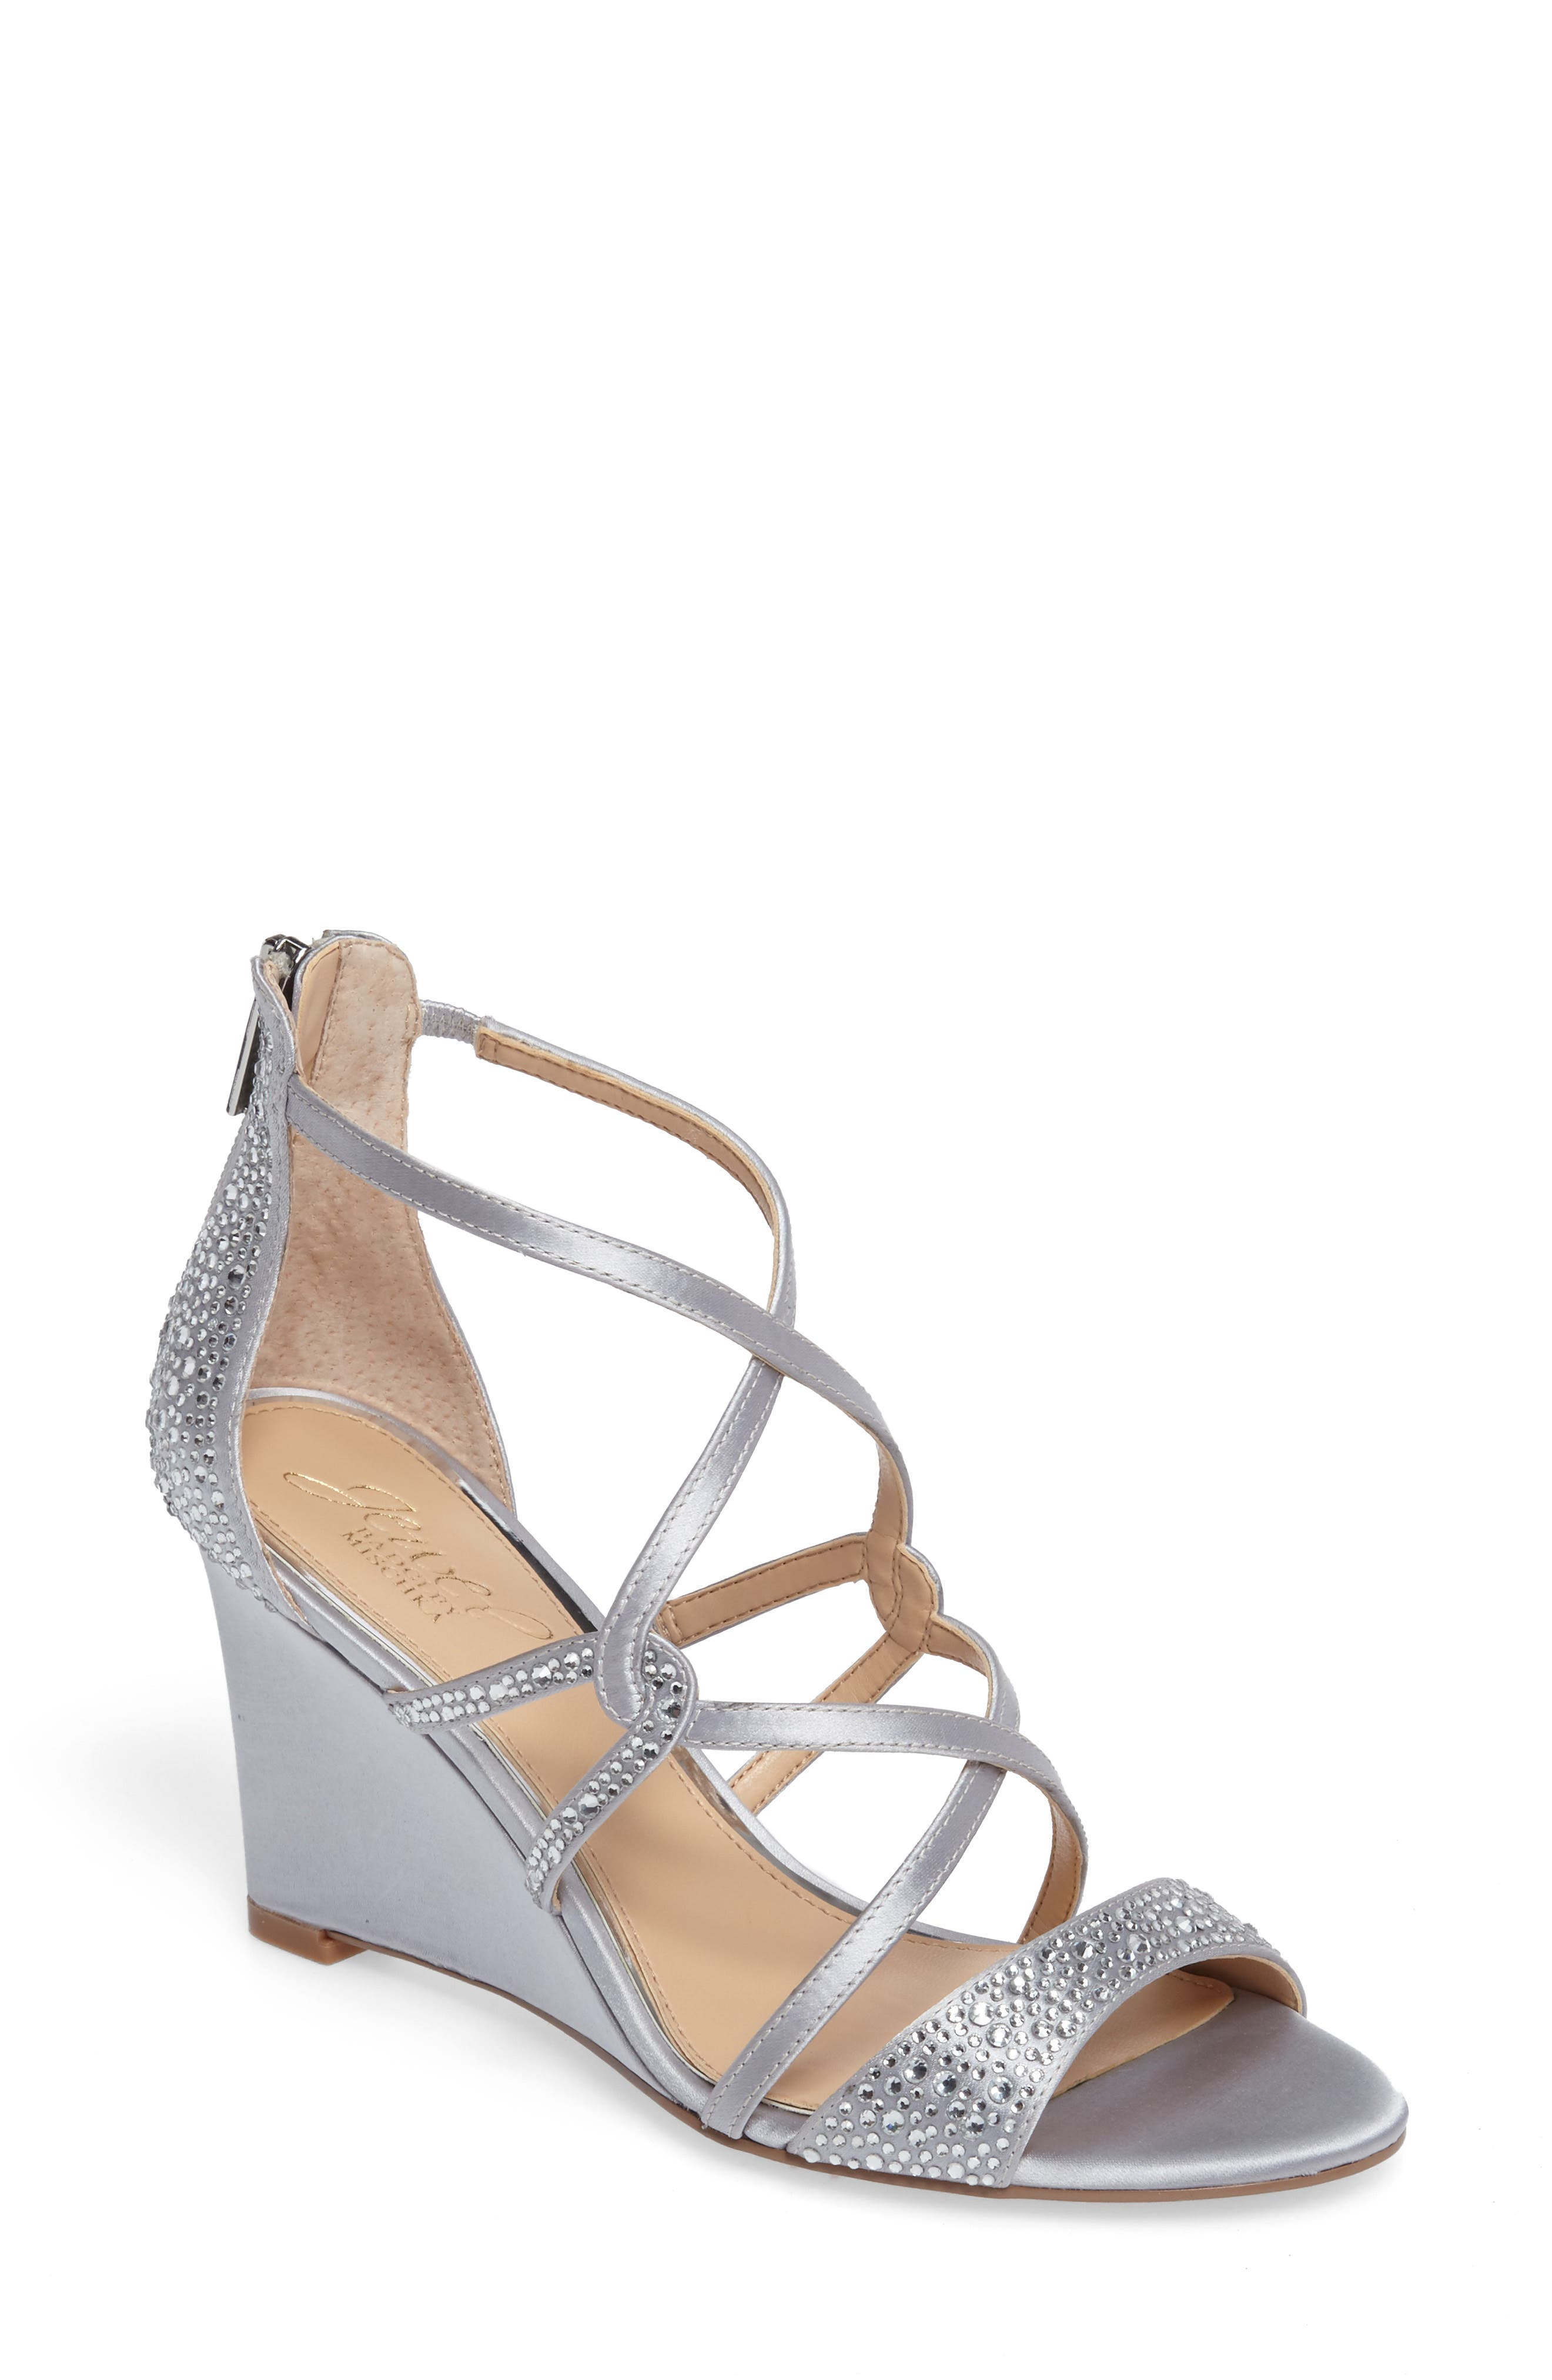 Ally II Embellished Wedge Sandal,                             Main thumbnail 1, color,                             Silver Satin